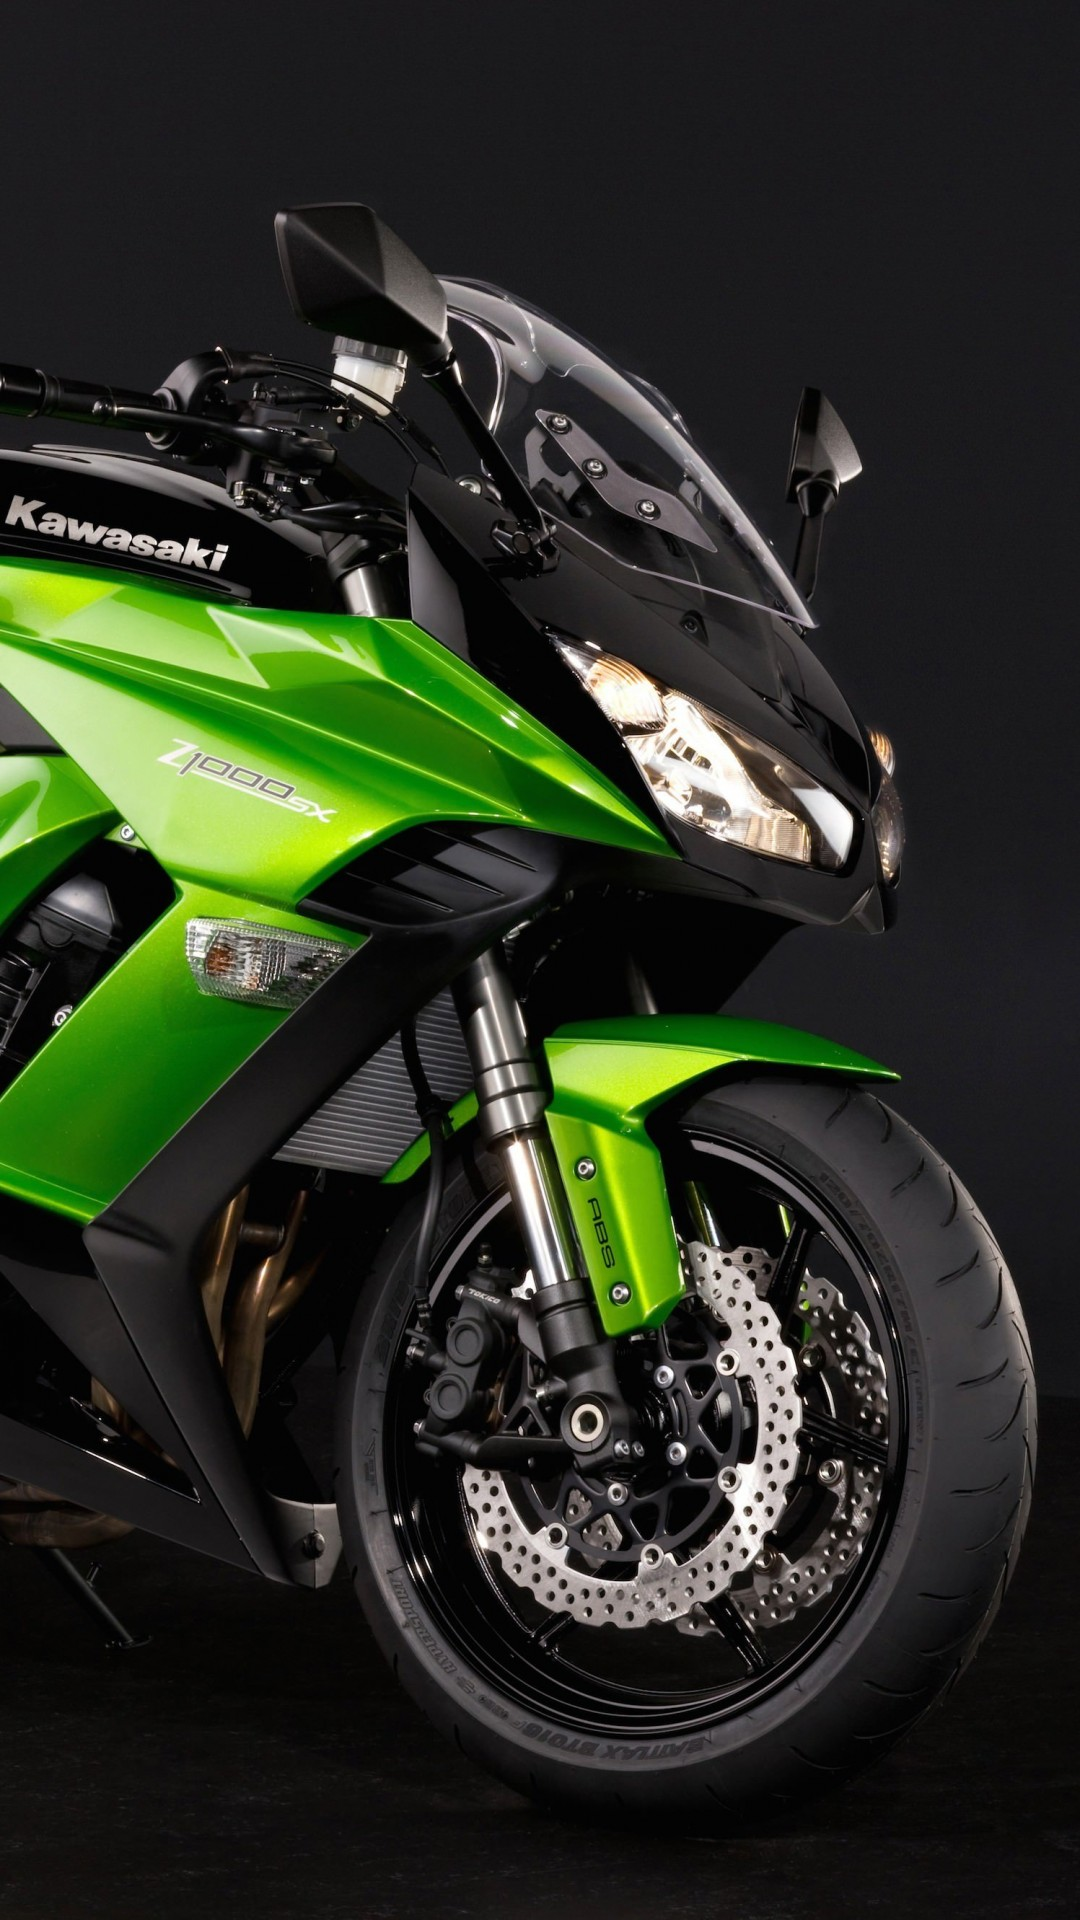 Kawasaki Kawasaki Z1000SX Wallpaper for Google Nexus 5X